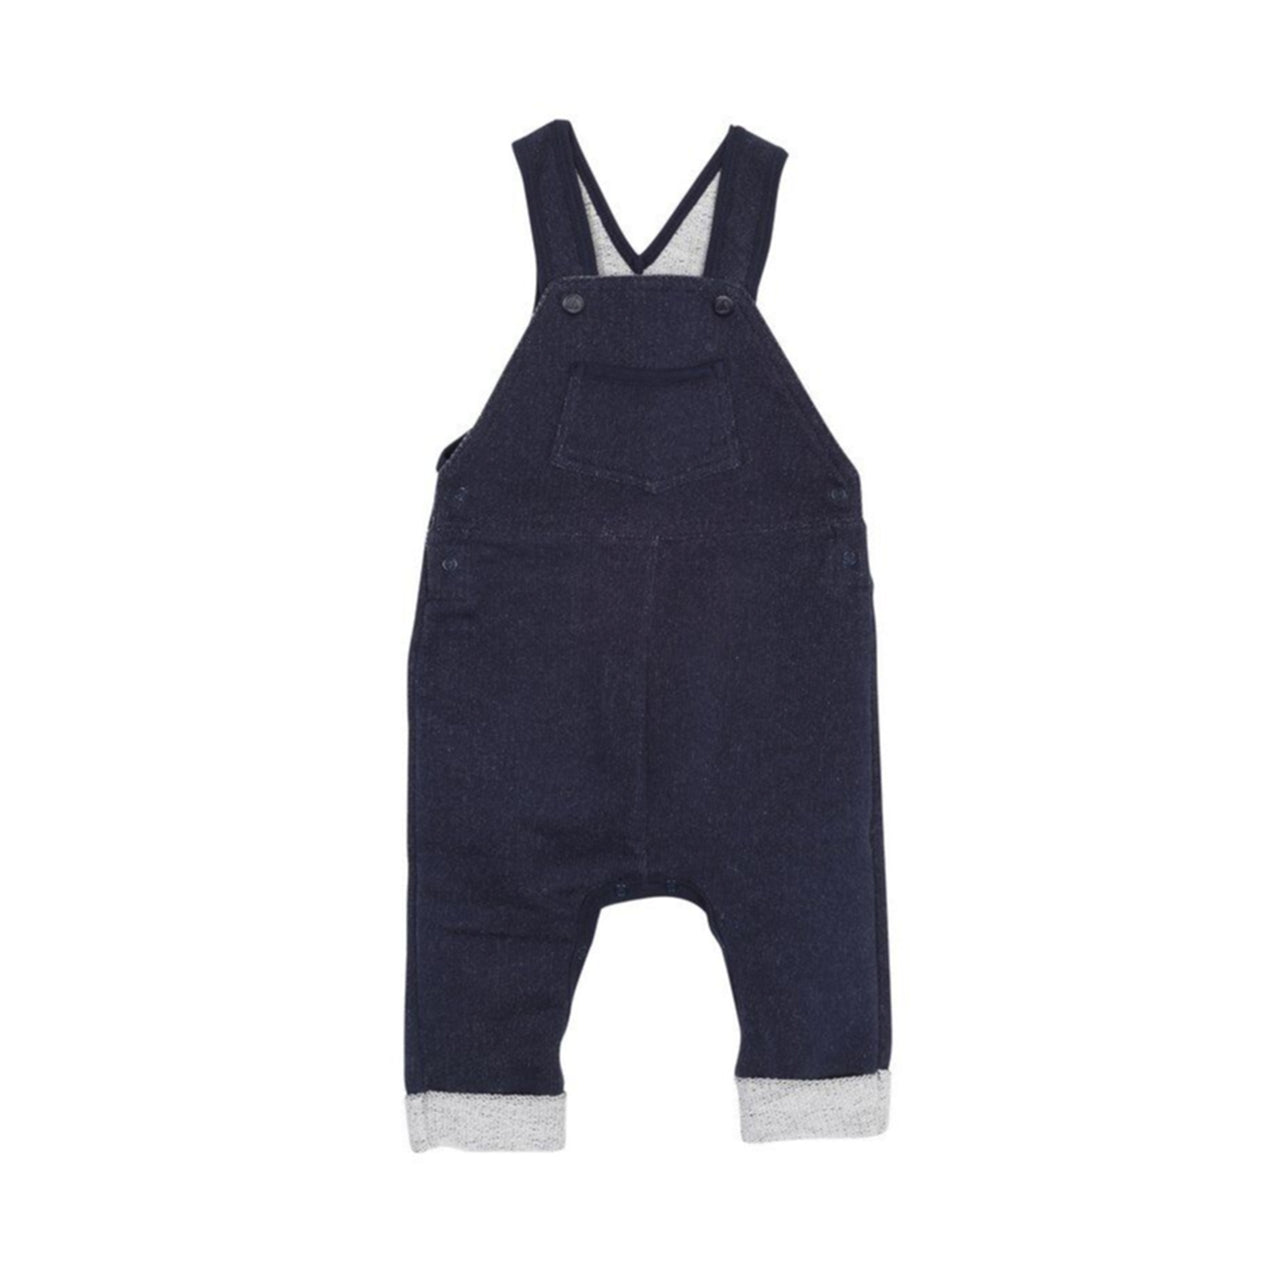 Baby Overalls with Front Pocket, Navy